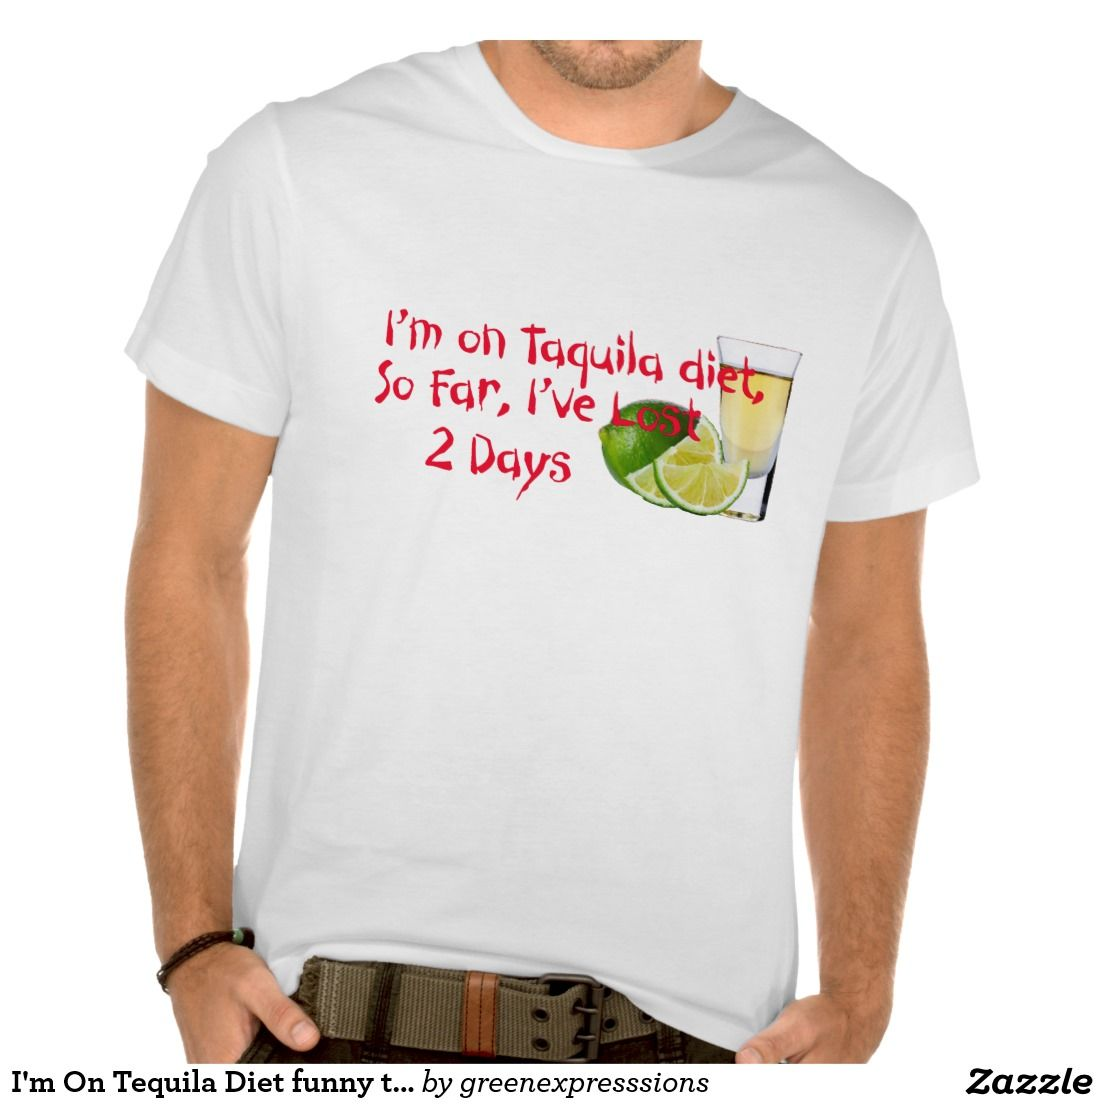 Zazzle t shirt design template - I M On Tequila Diet Funny T Shirt Design Gift Idea